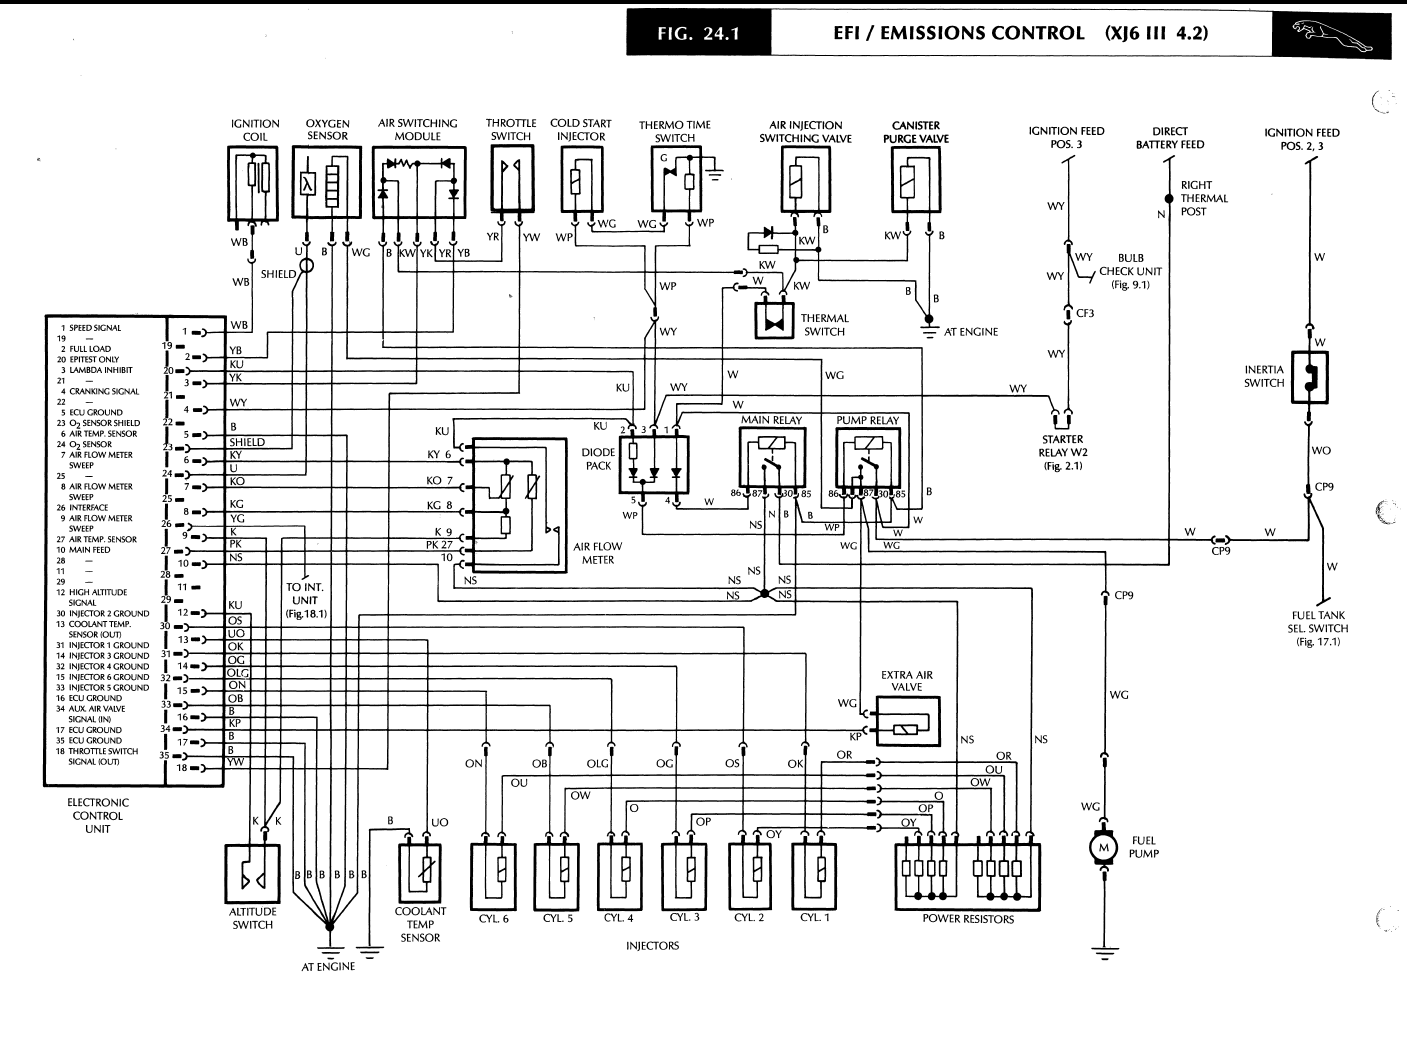 wiring diagram for jaguar wiring wiring diagrams xj6%20efi%20diagram wiring diagram for jaguar